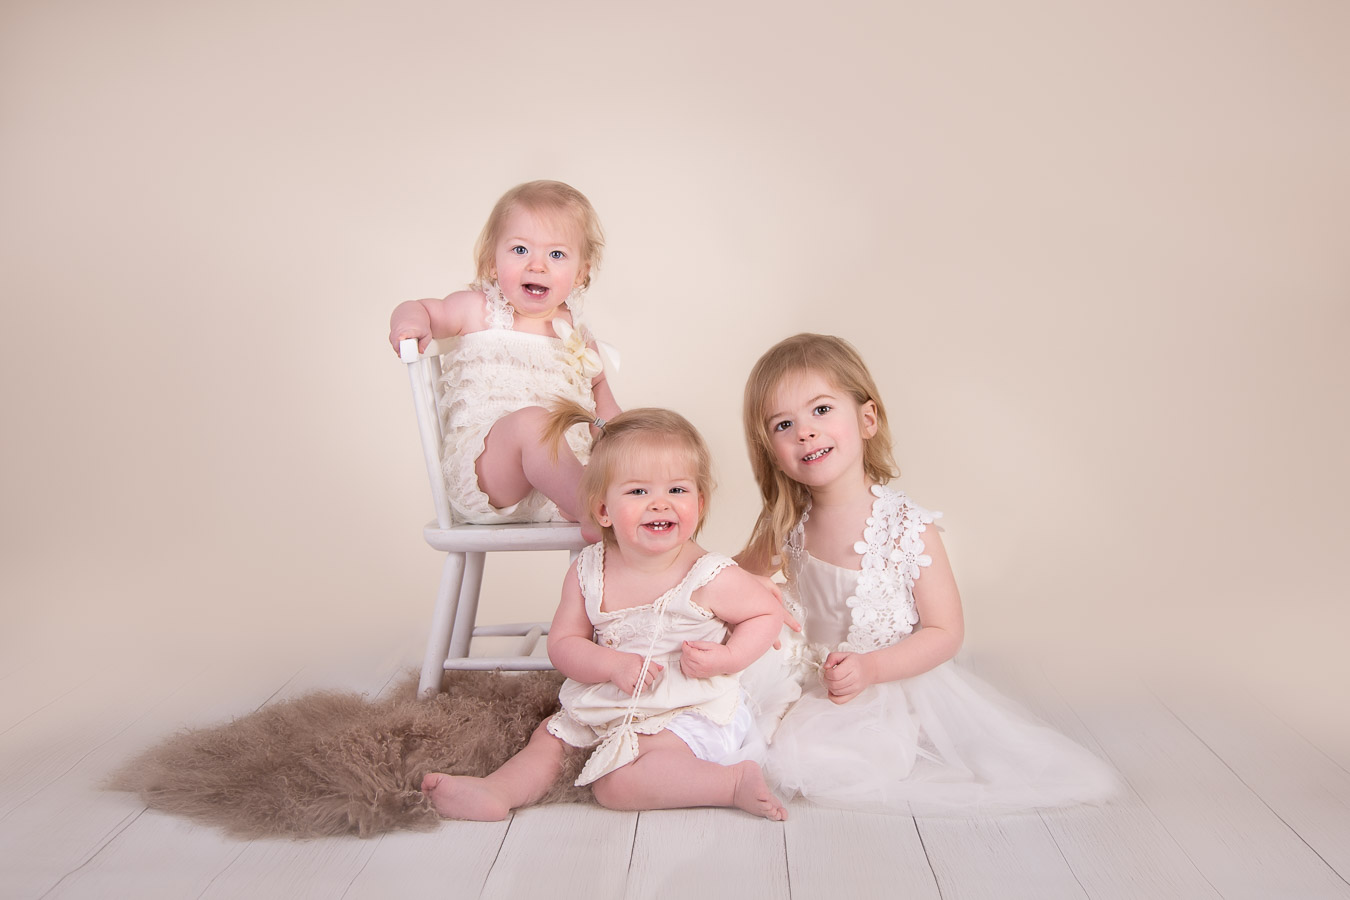 Image of 3 sisters posing from classic children session from Halifax Family Photographer